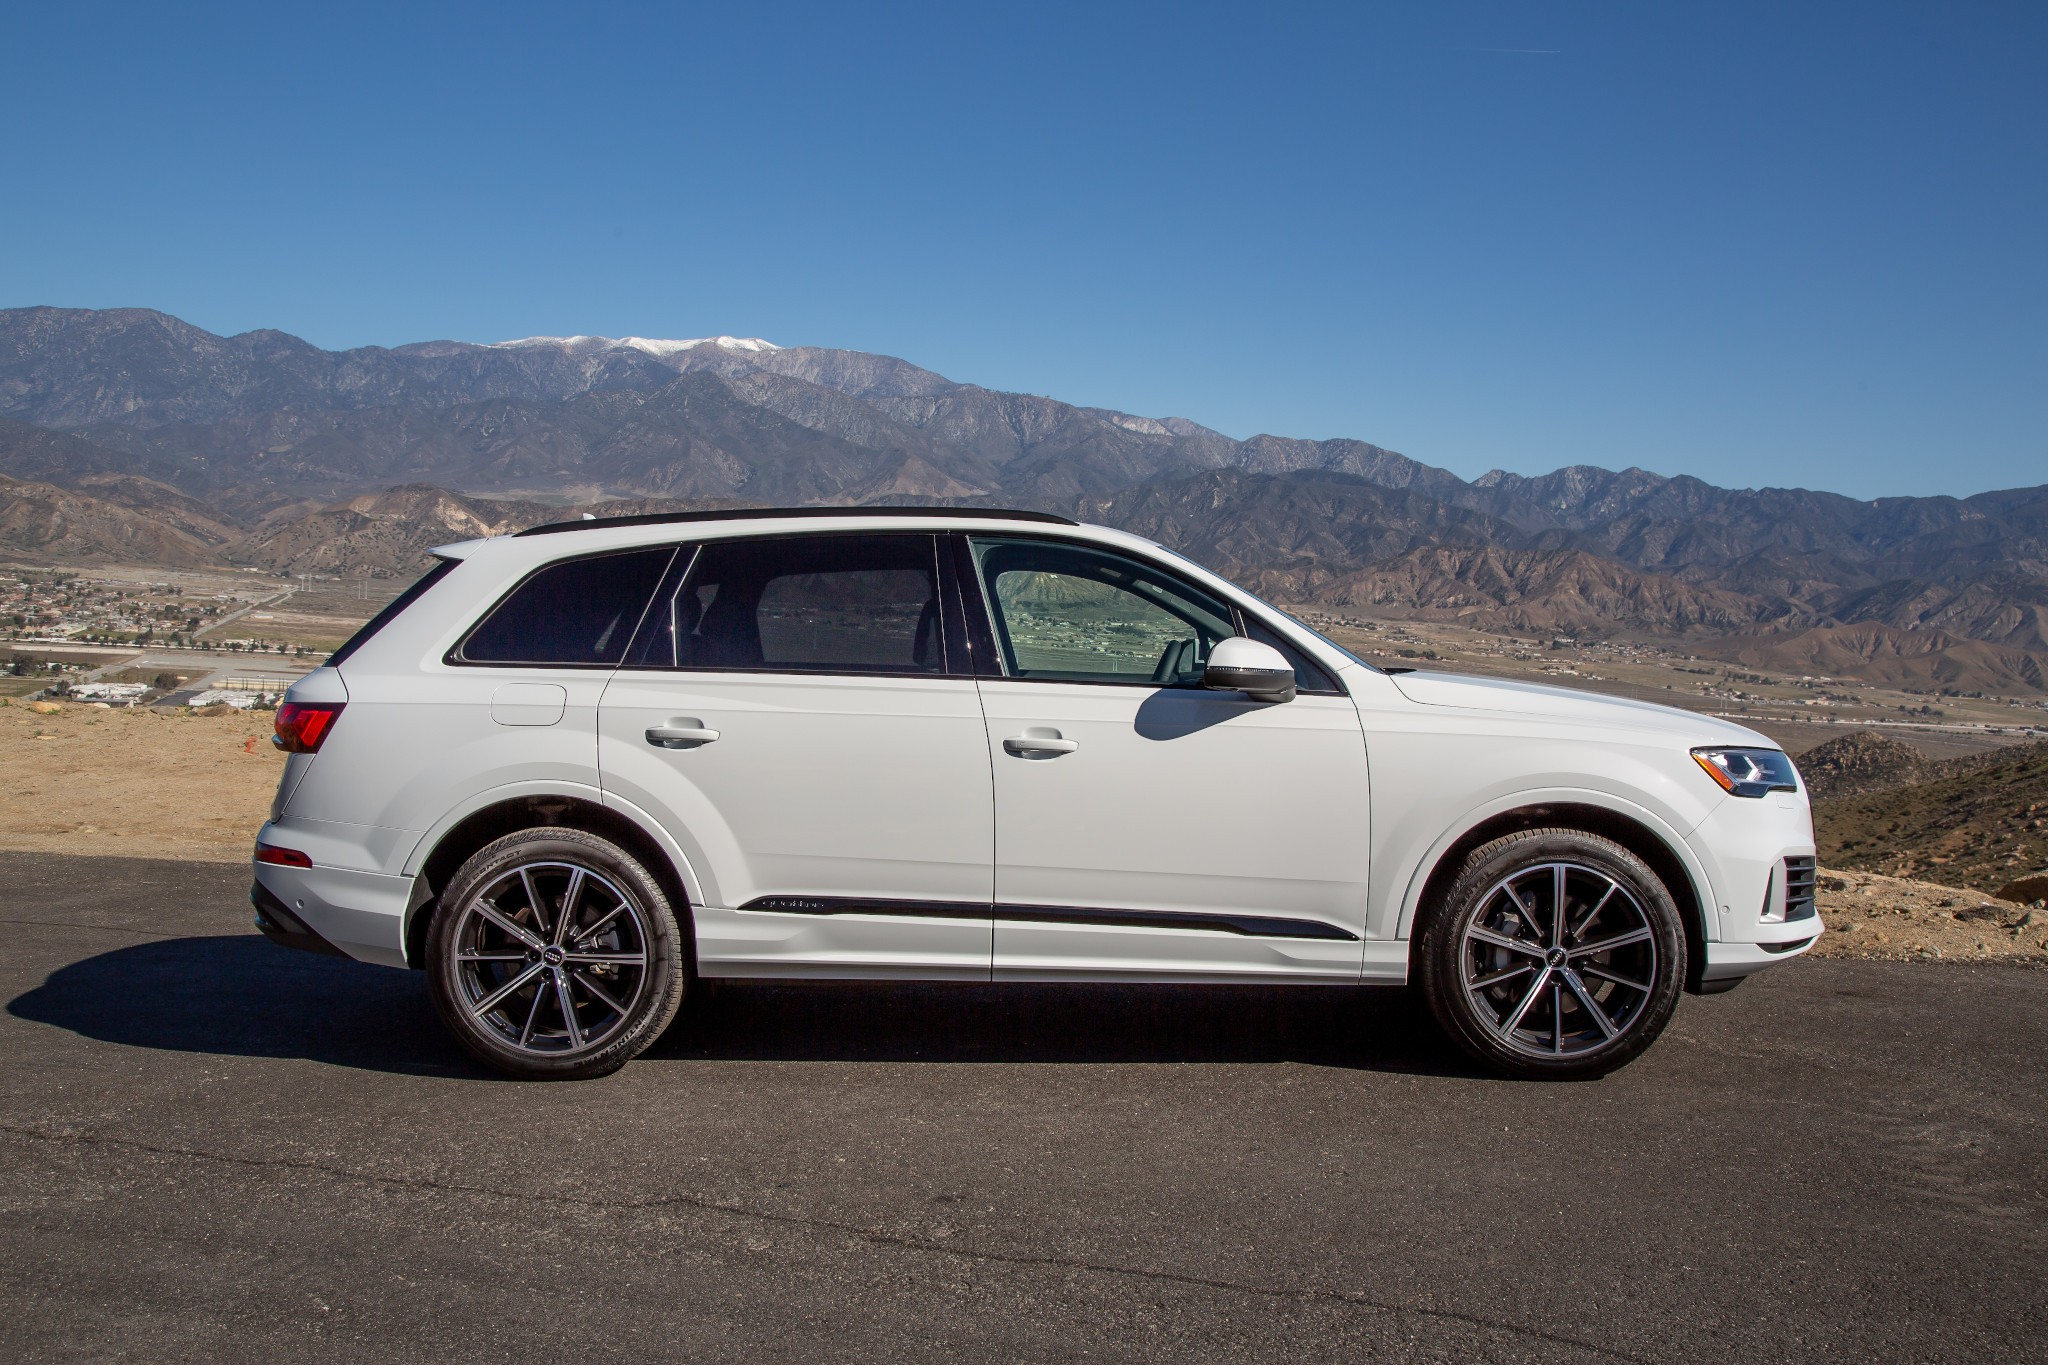 Top 5 Reviews and Videos of the Week: 2020 Audi Q7, S4 Can't Catch Corvette